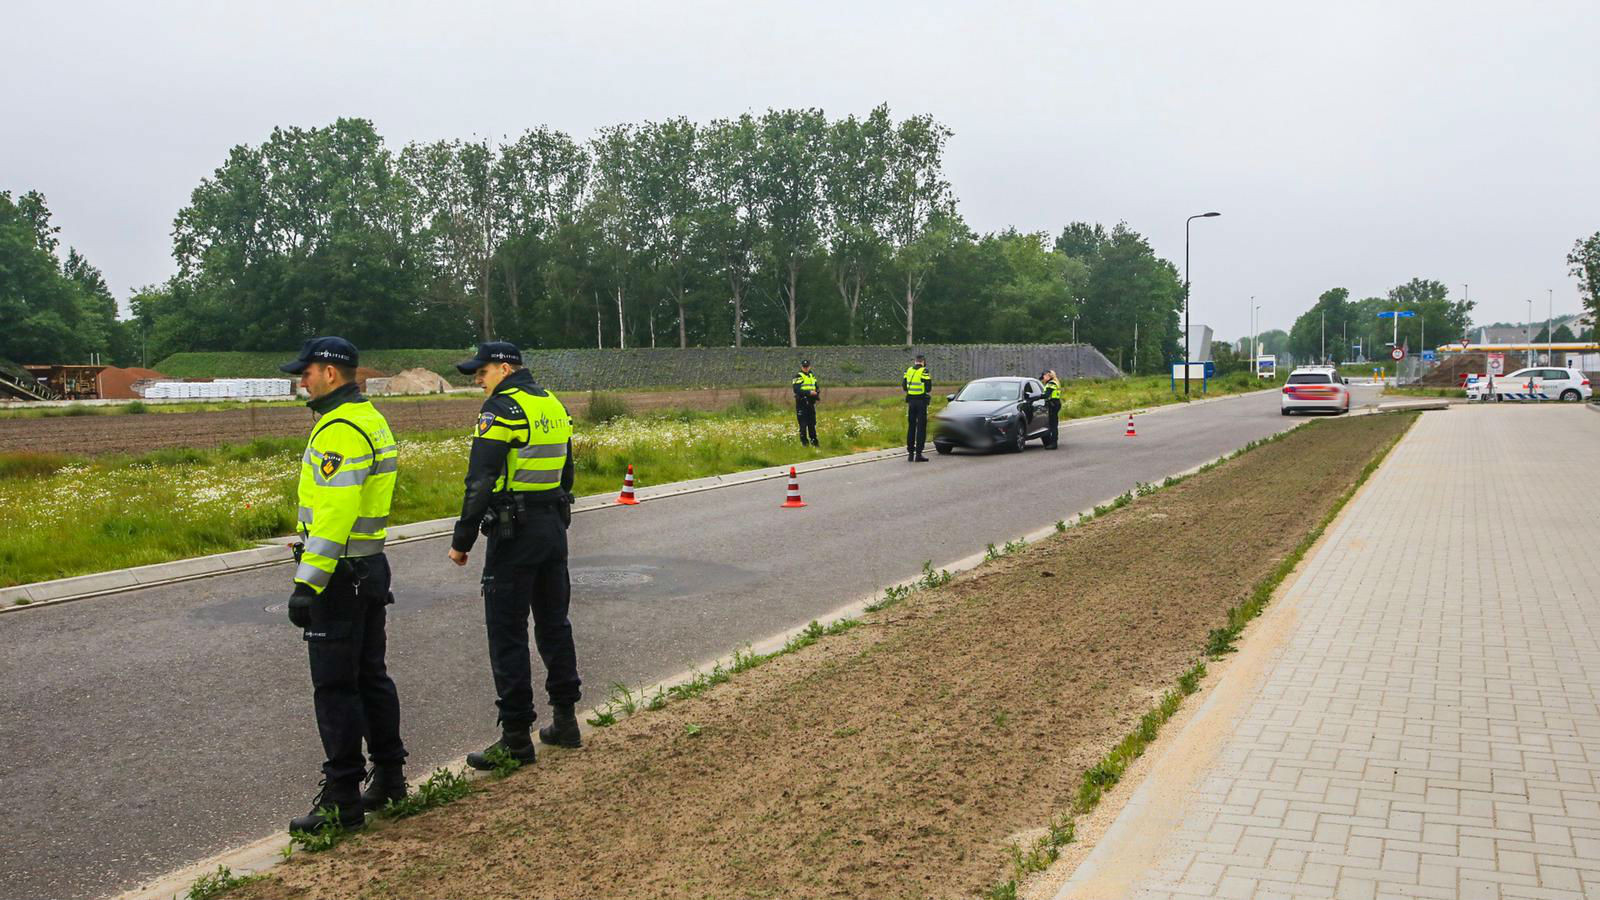 Controle Prinsenmeer Ommel